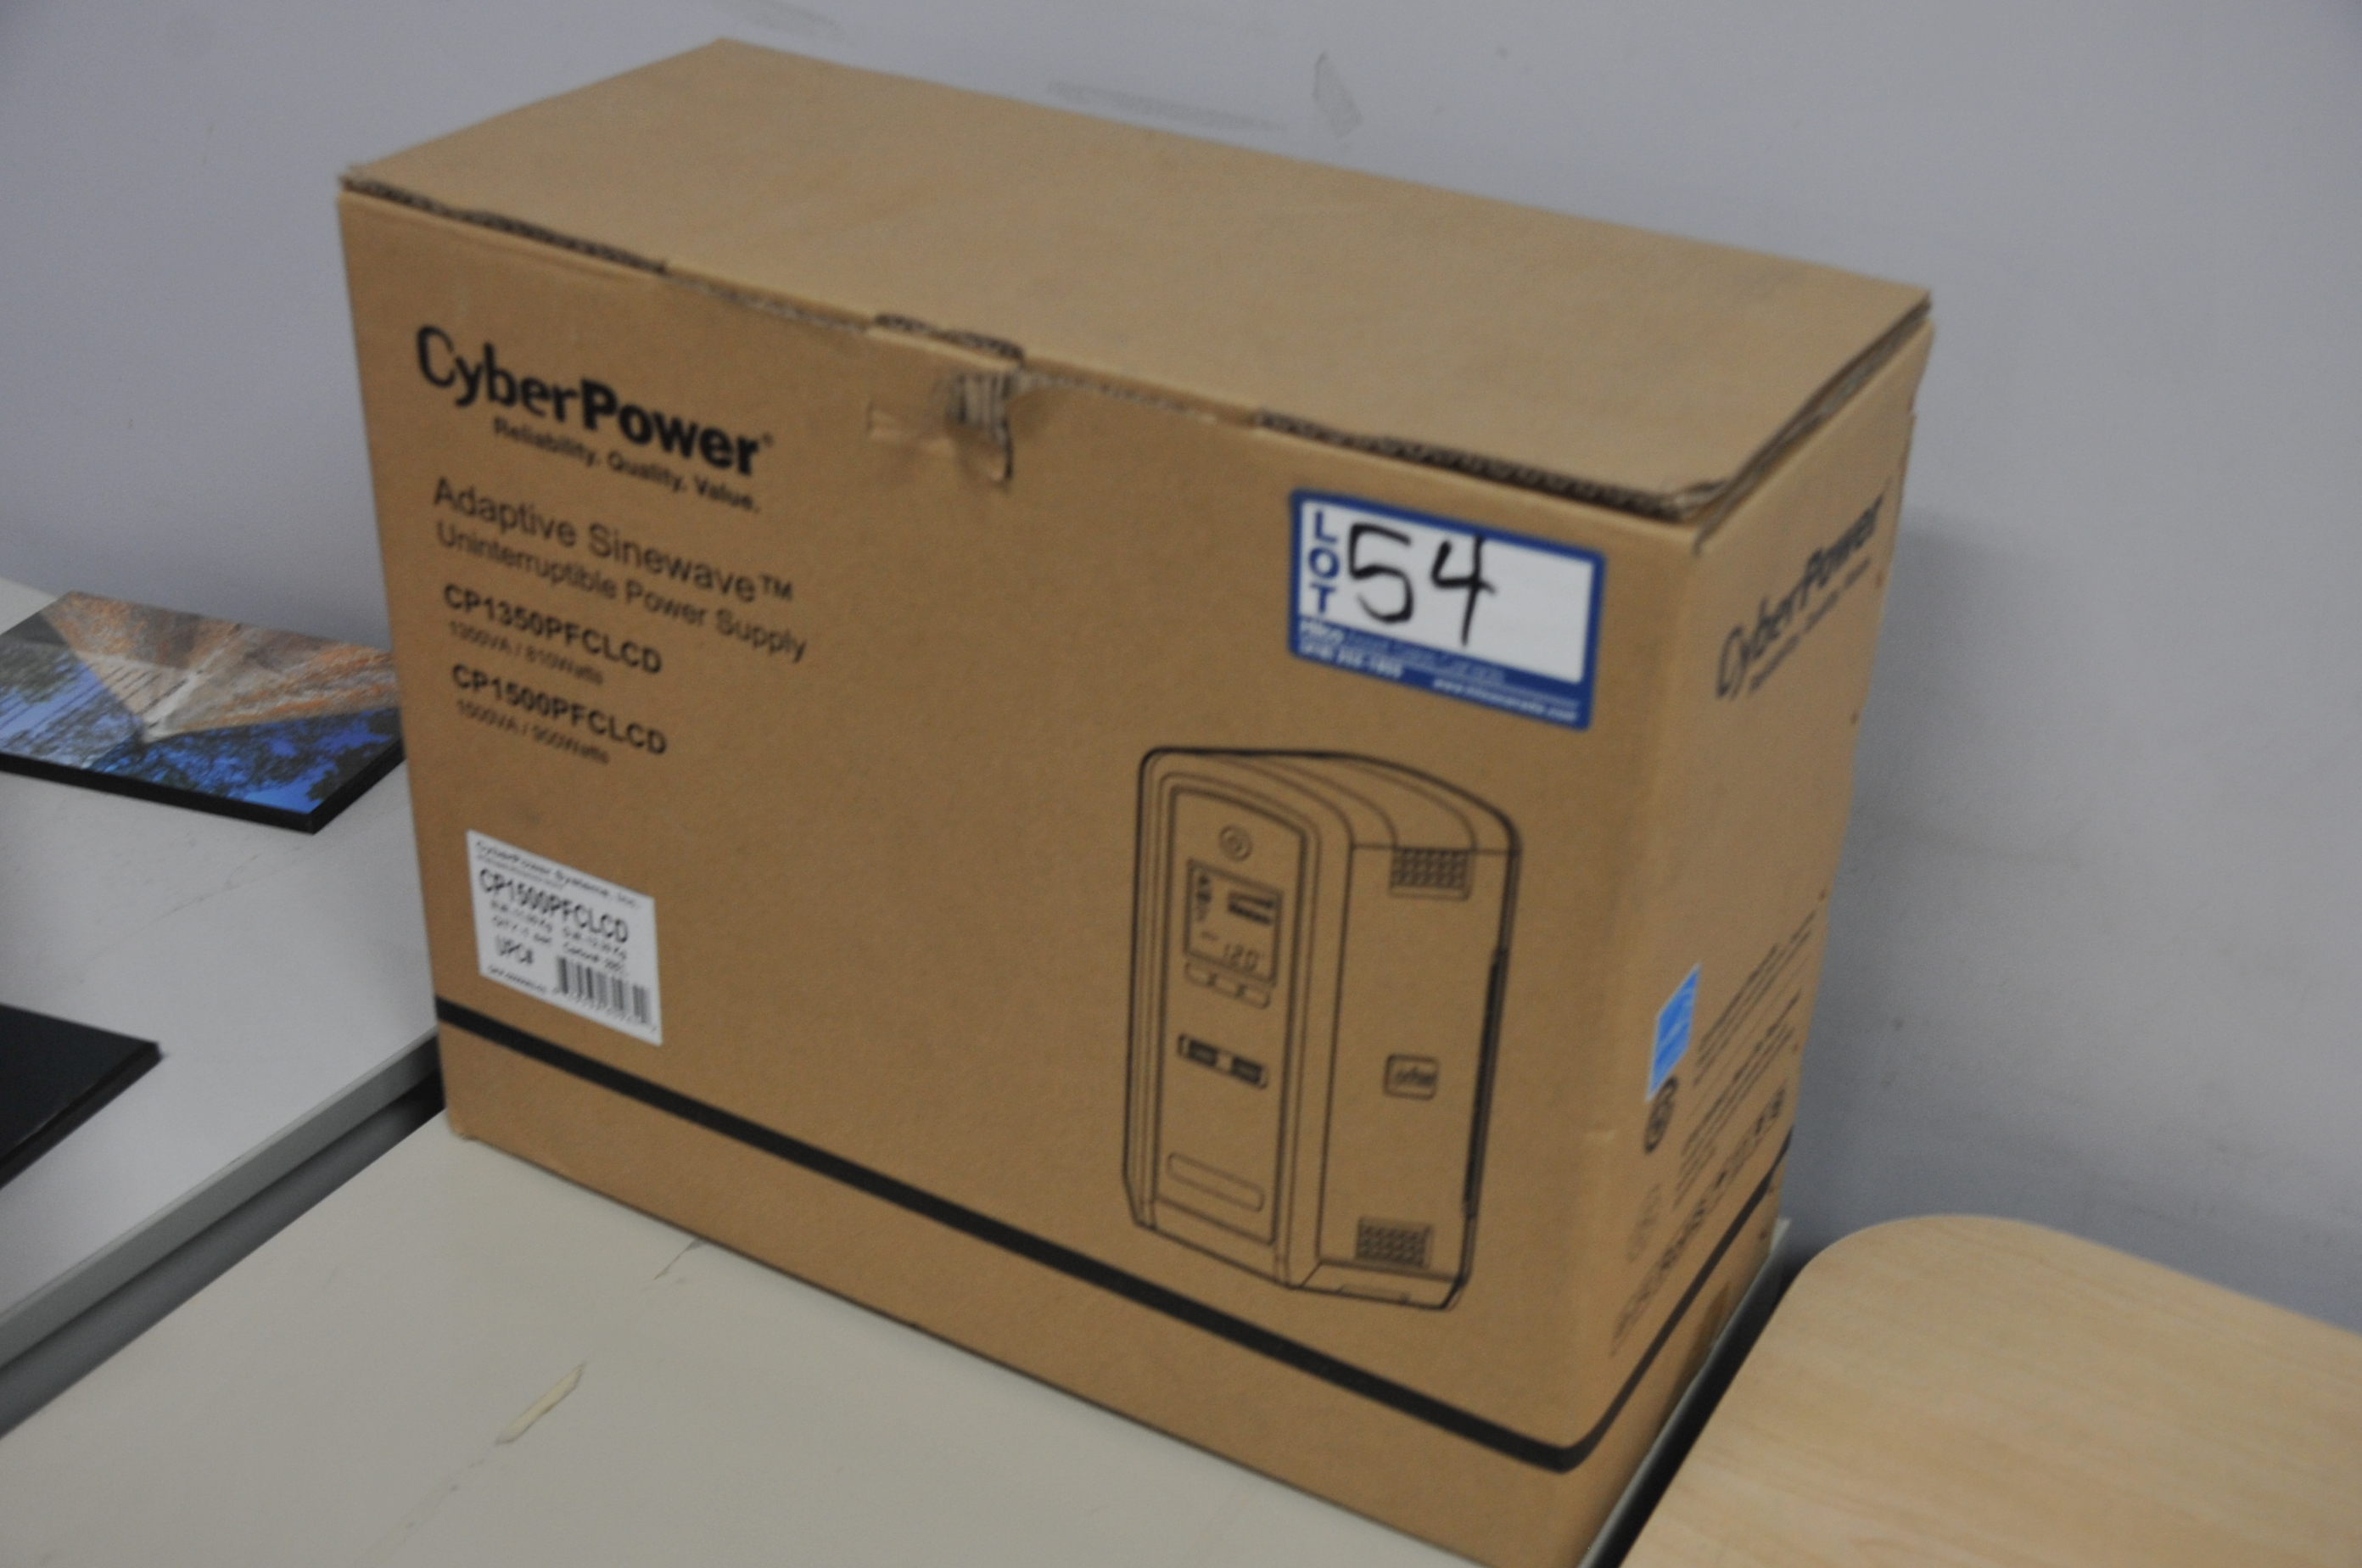 Cyber Model Power CP1500PFCLCD UPS; (NEW)